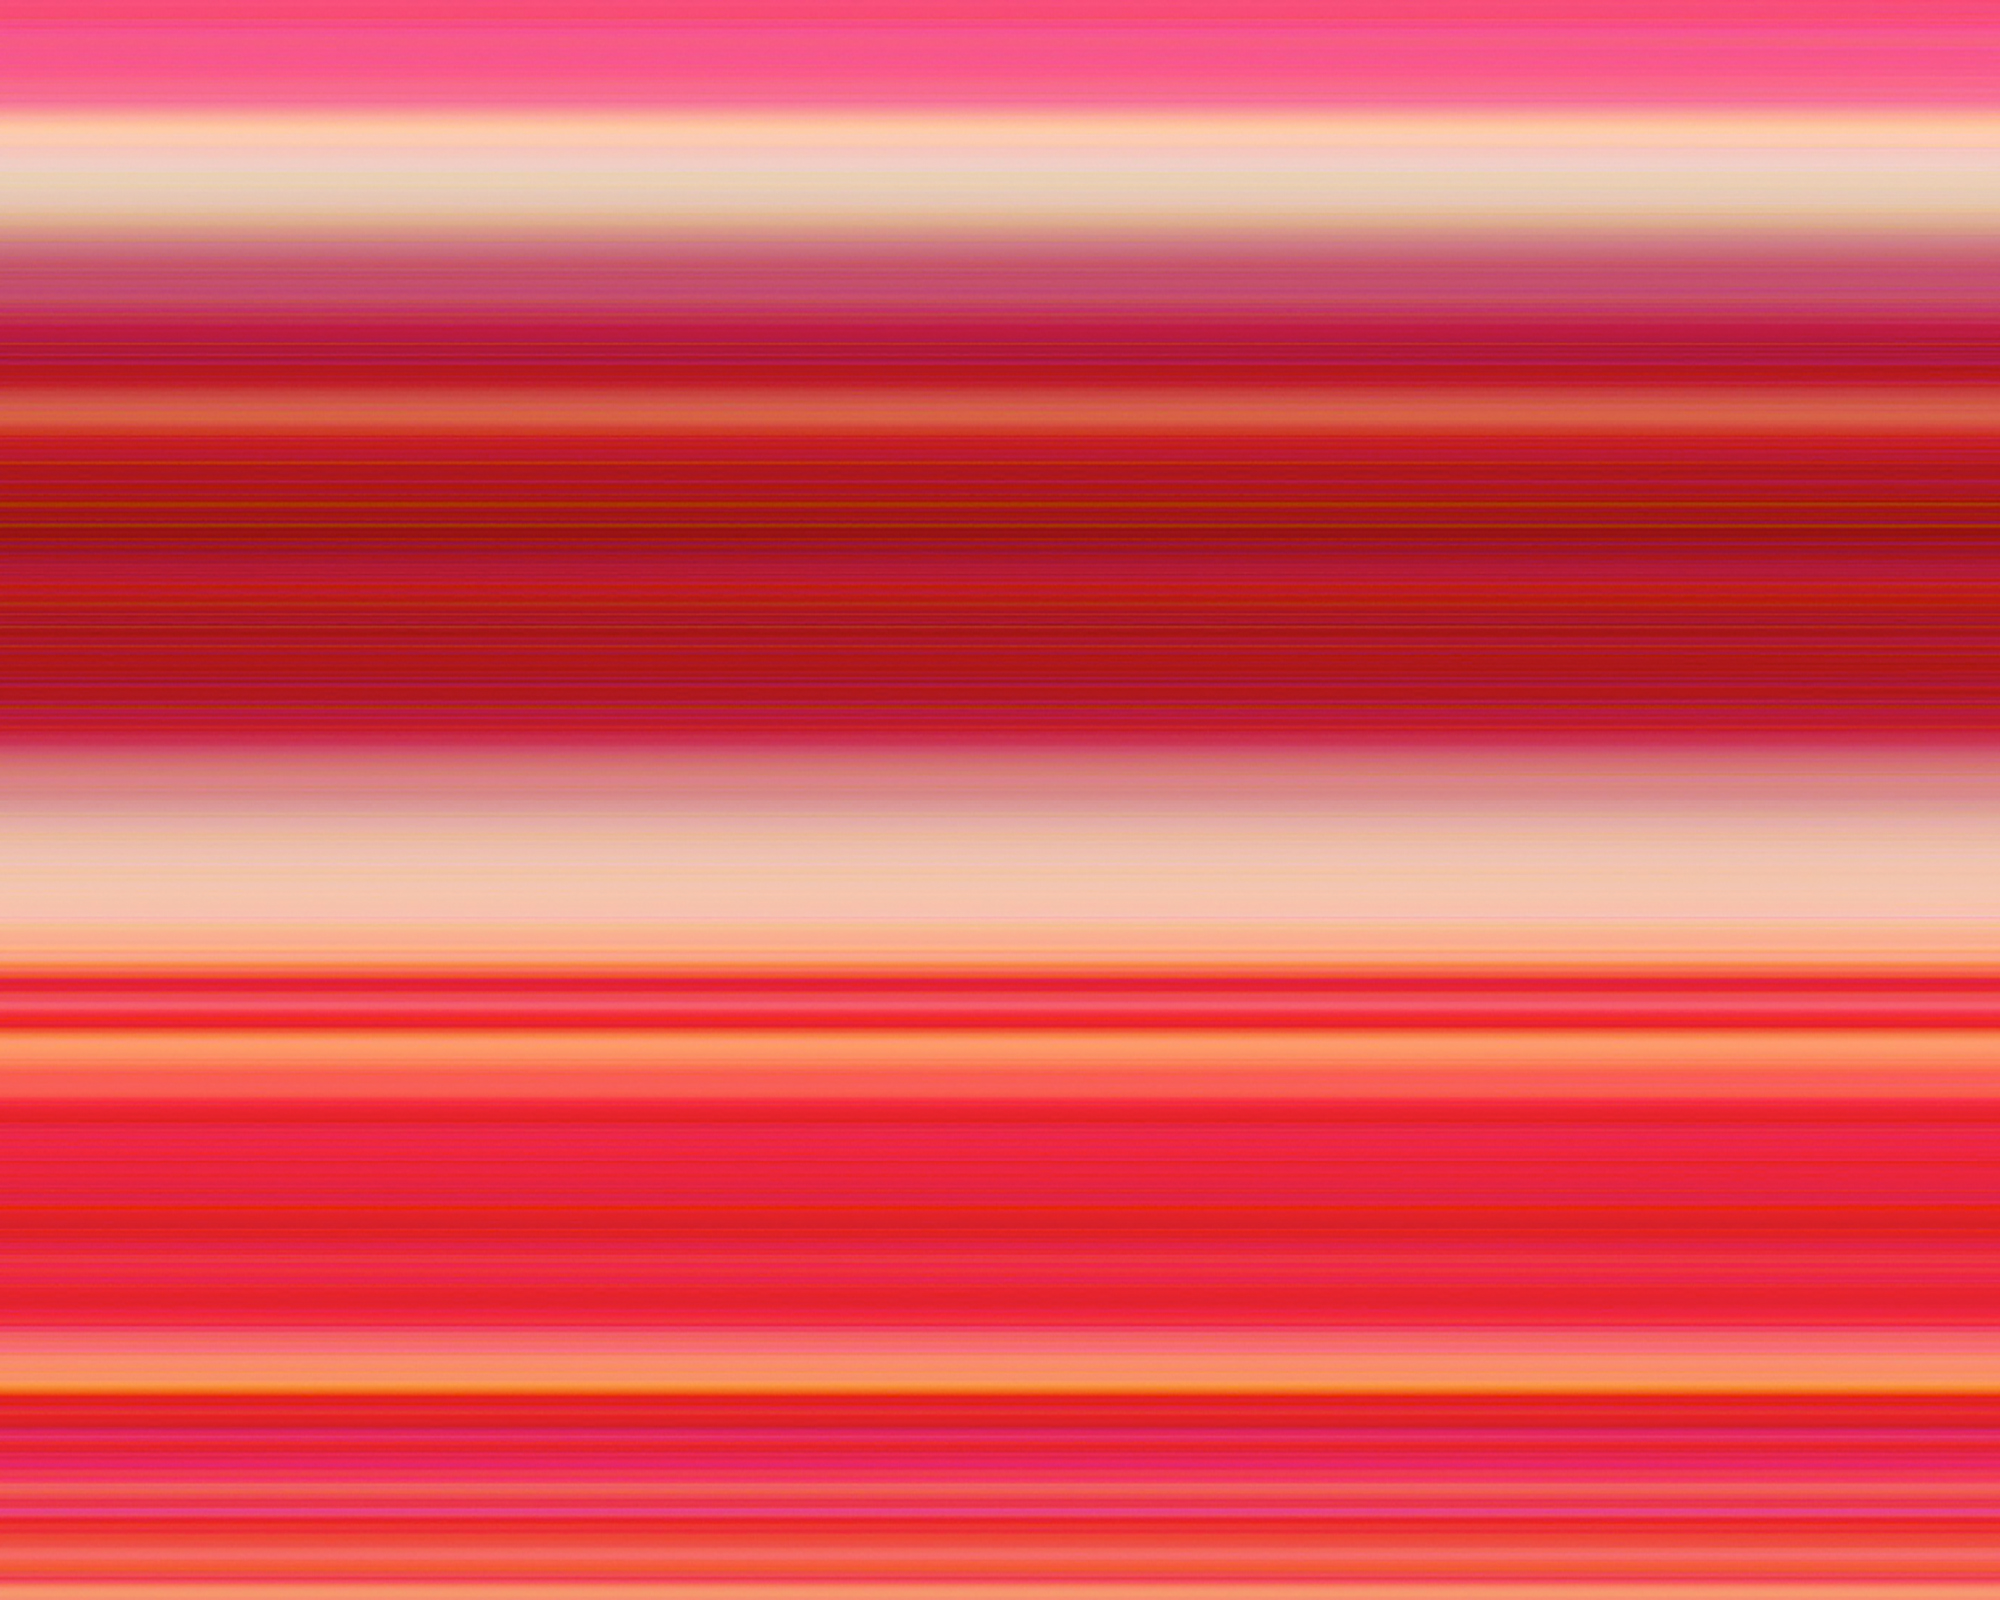 line_chopped_dahlia_red_no_1_2012_keith_mendenhall